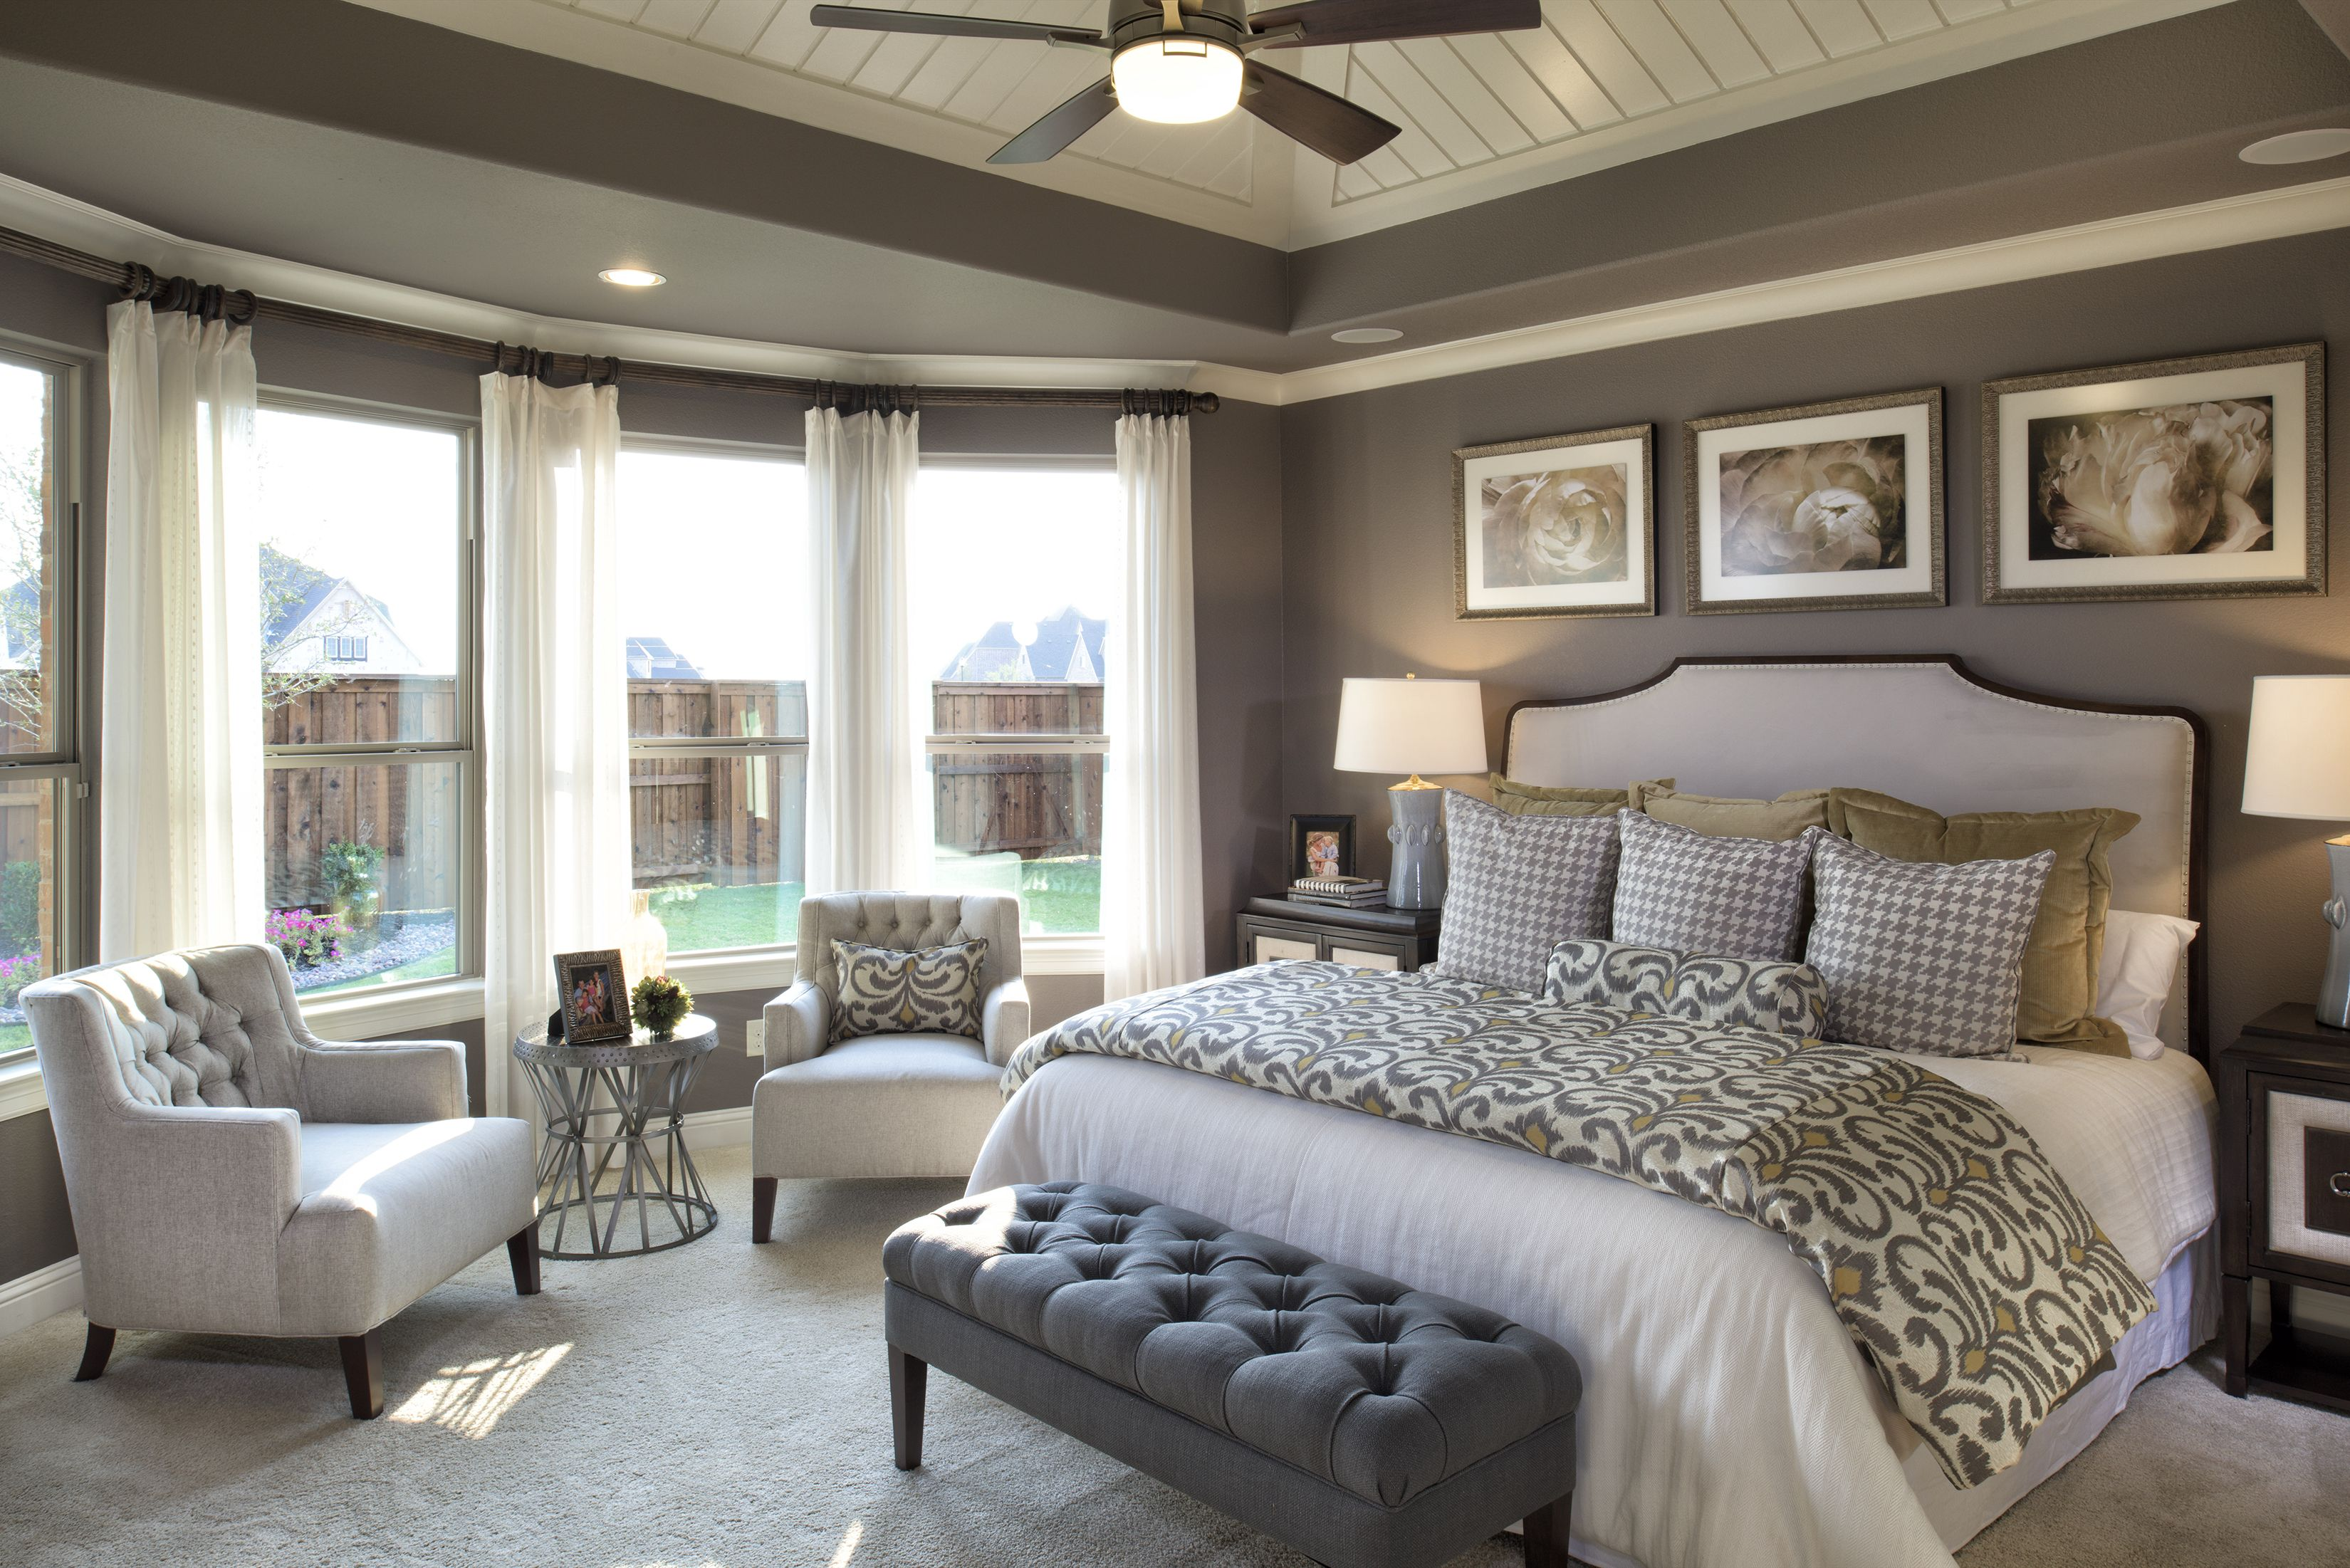 Pure elegance! #master #bedroom | Luxurious bedrooms, Home ...